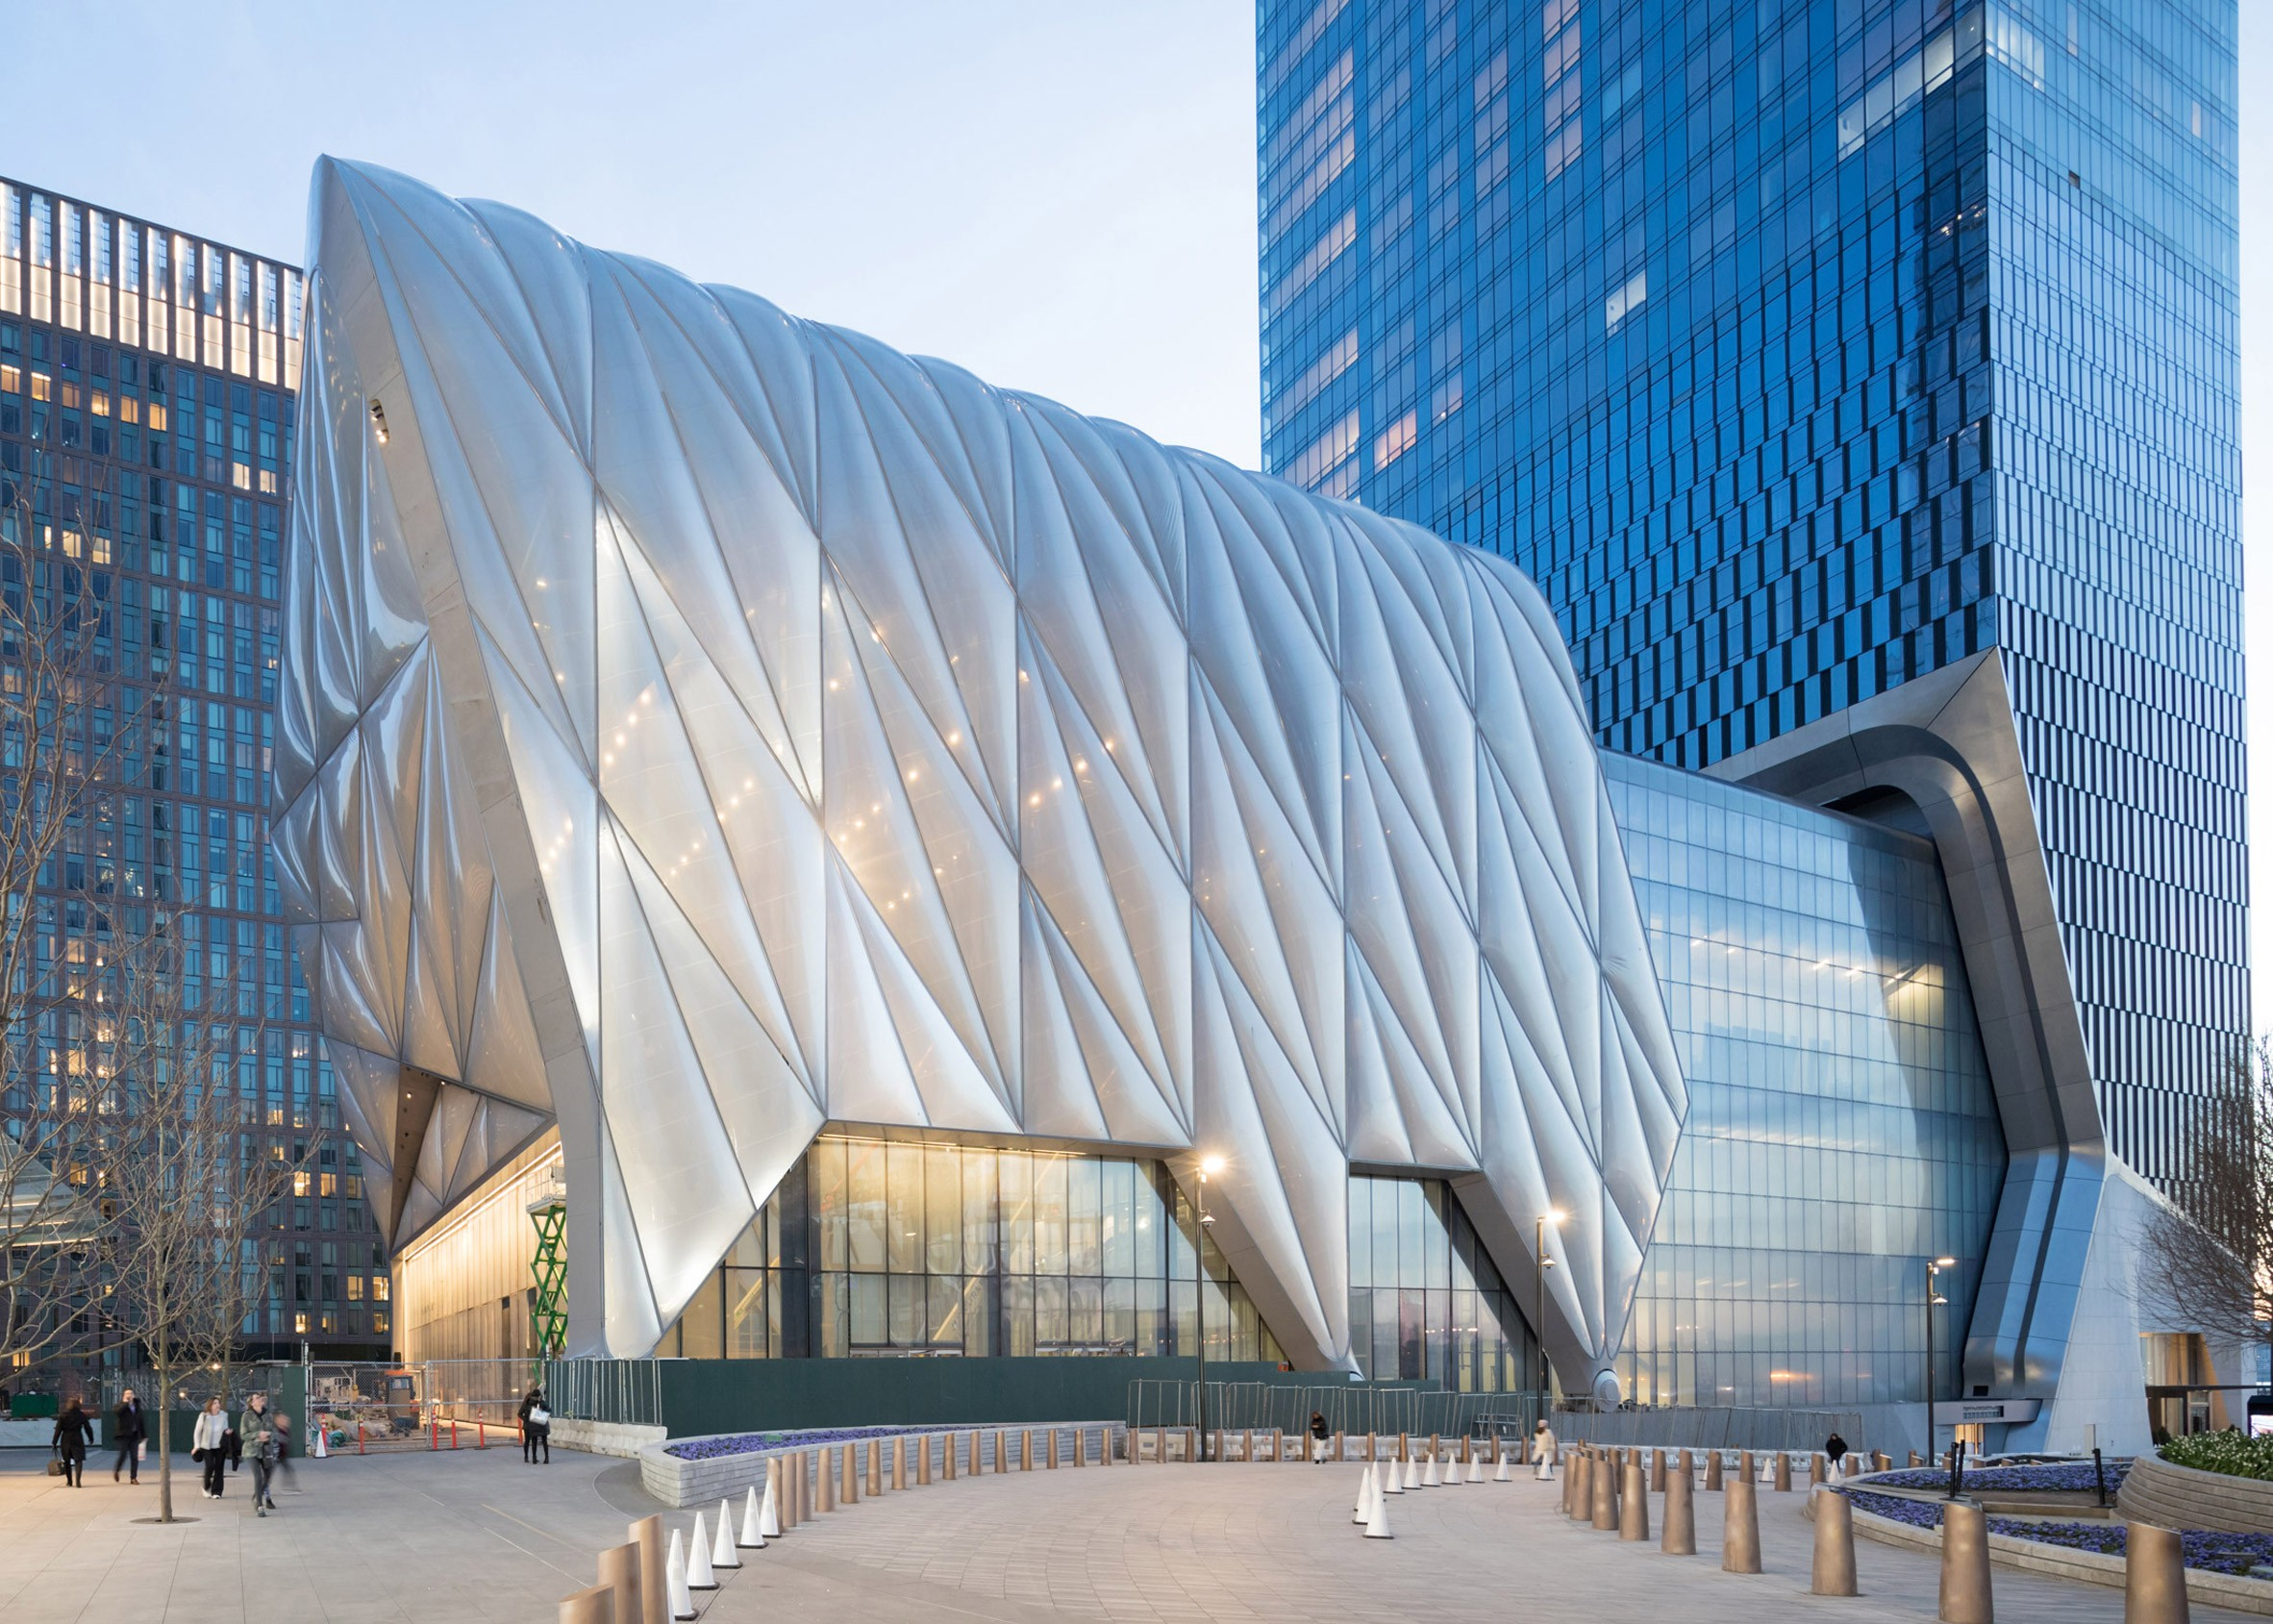 the-shed-diller-scofidio-renfro-rockwell-group-architecture-art-complex-new-york-city-hudson-yards-iwan-baan-usa-dezeen-2364-hero.jpg